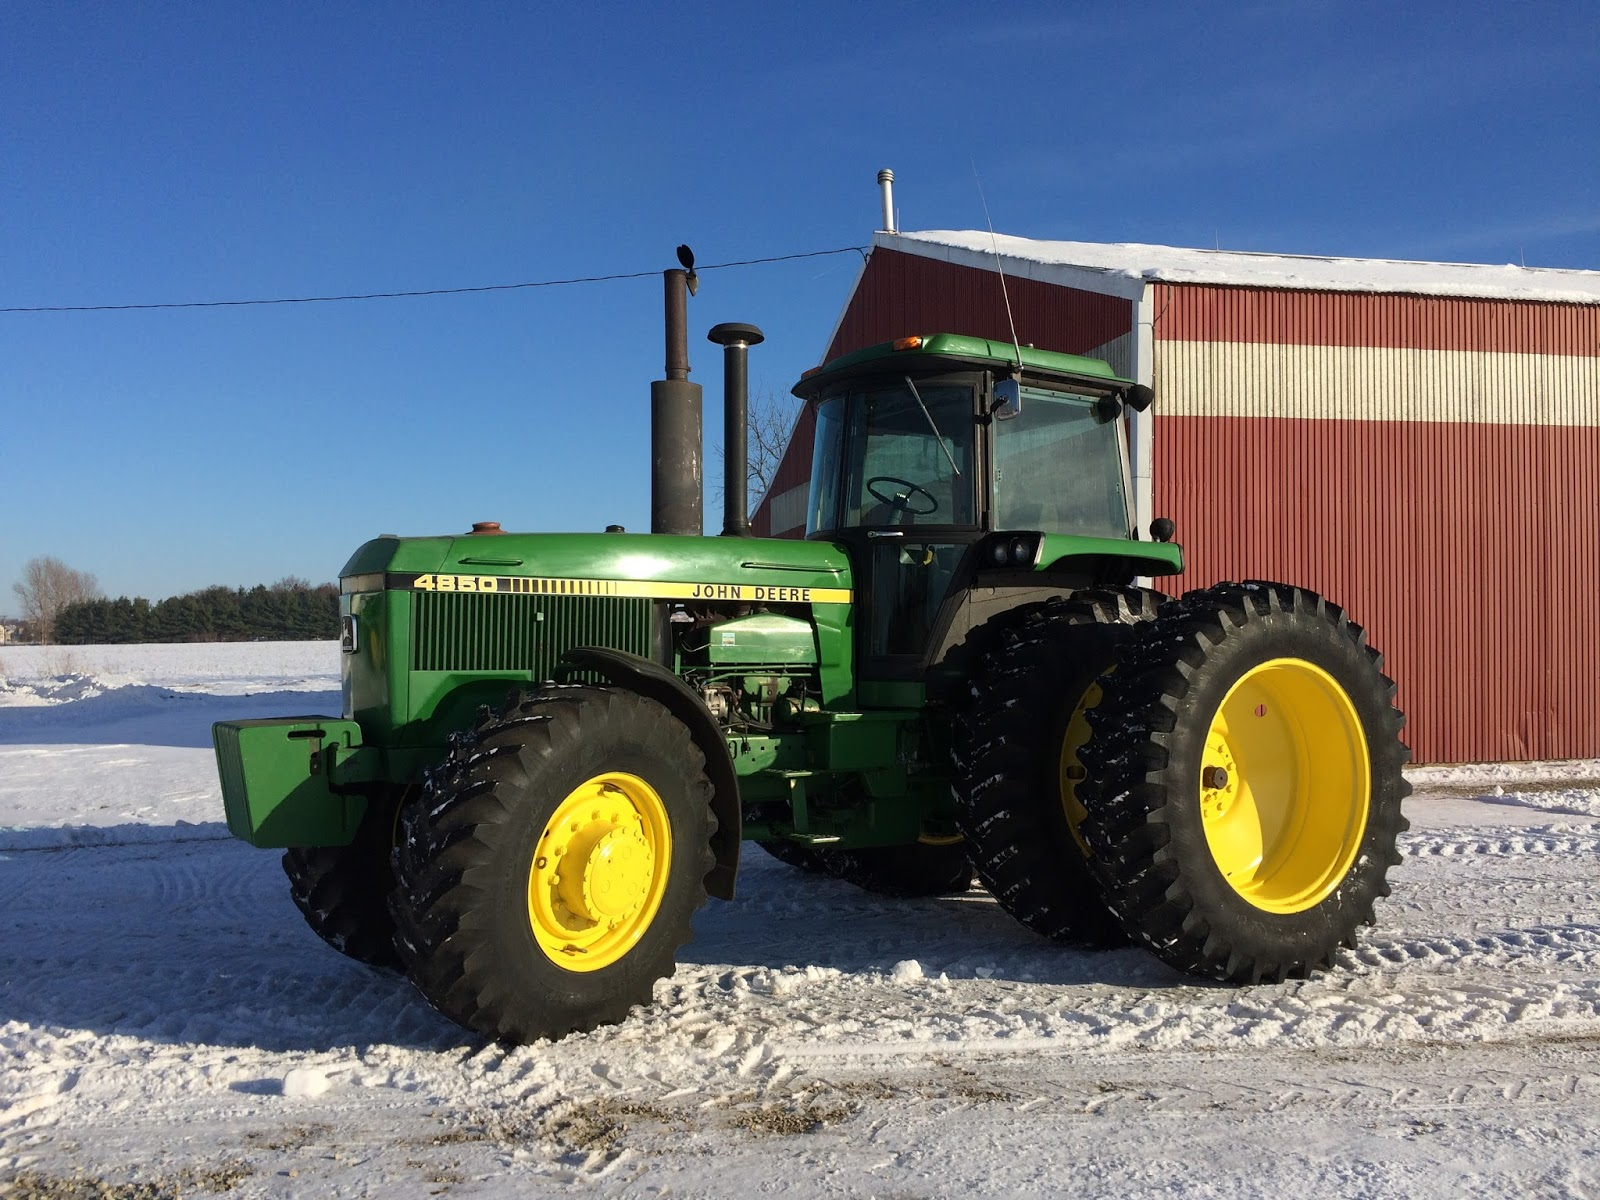 I Am Ing My John Deere 4850 This Tractor Is A 1982 Model With 9014 Hours The Identification Number Rw4850 P005425 It Has Fif Sd Shft